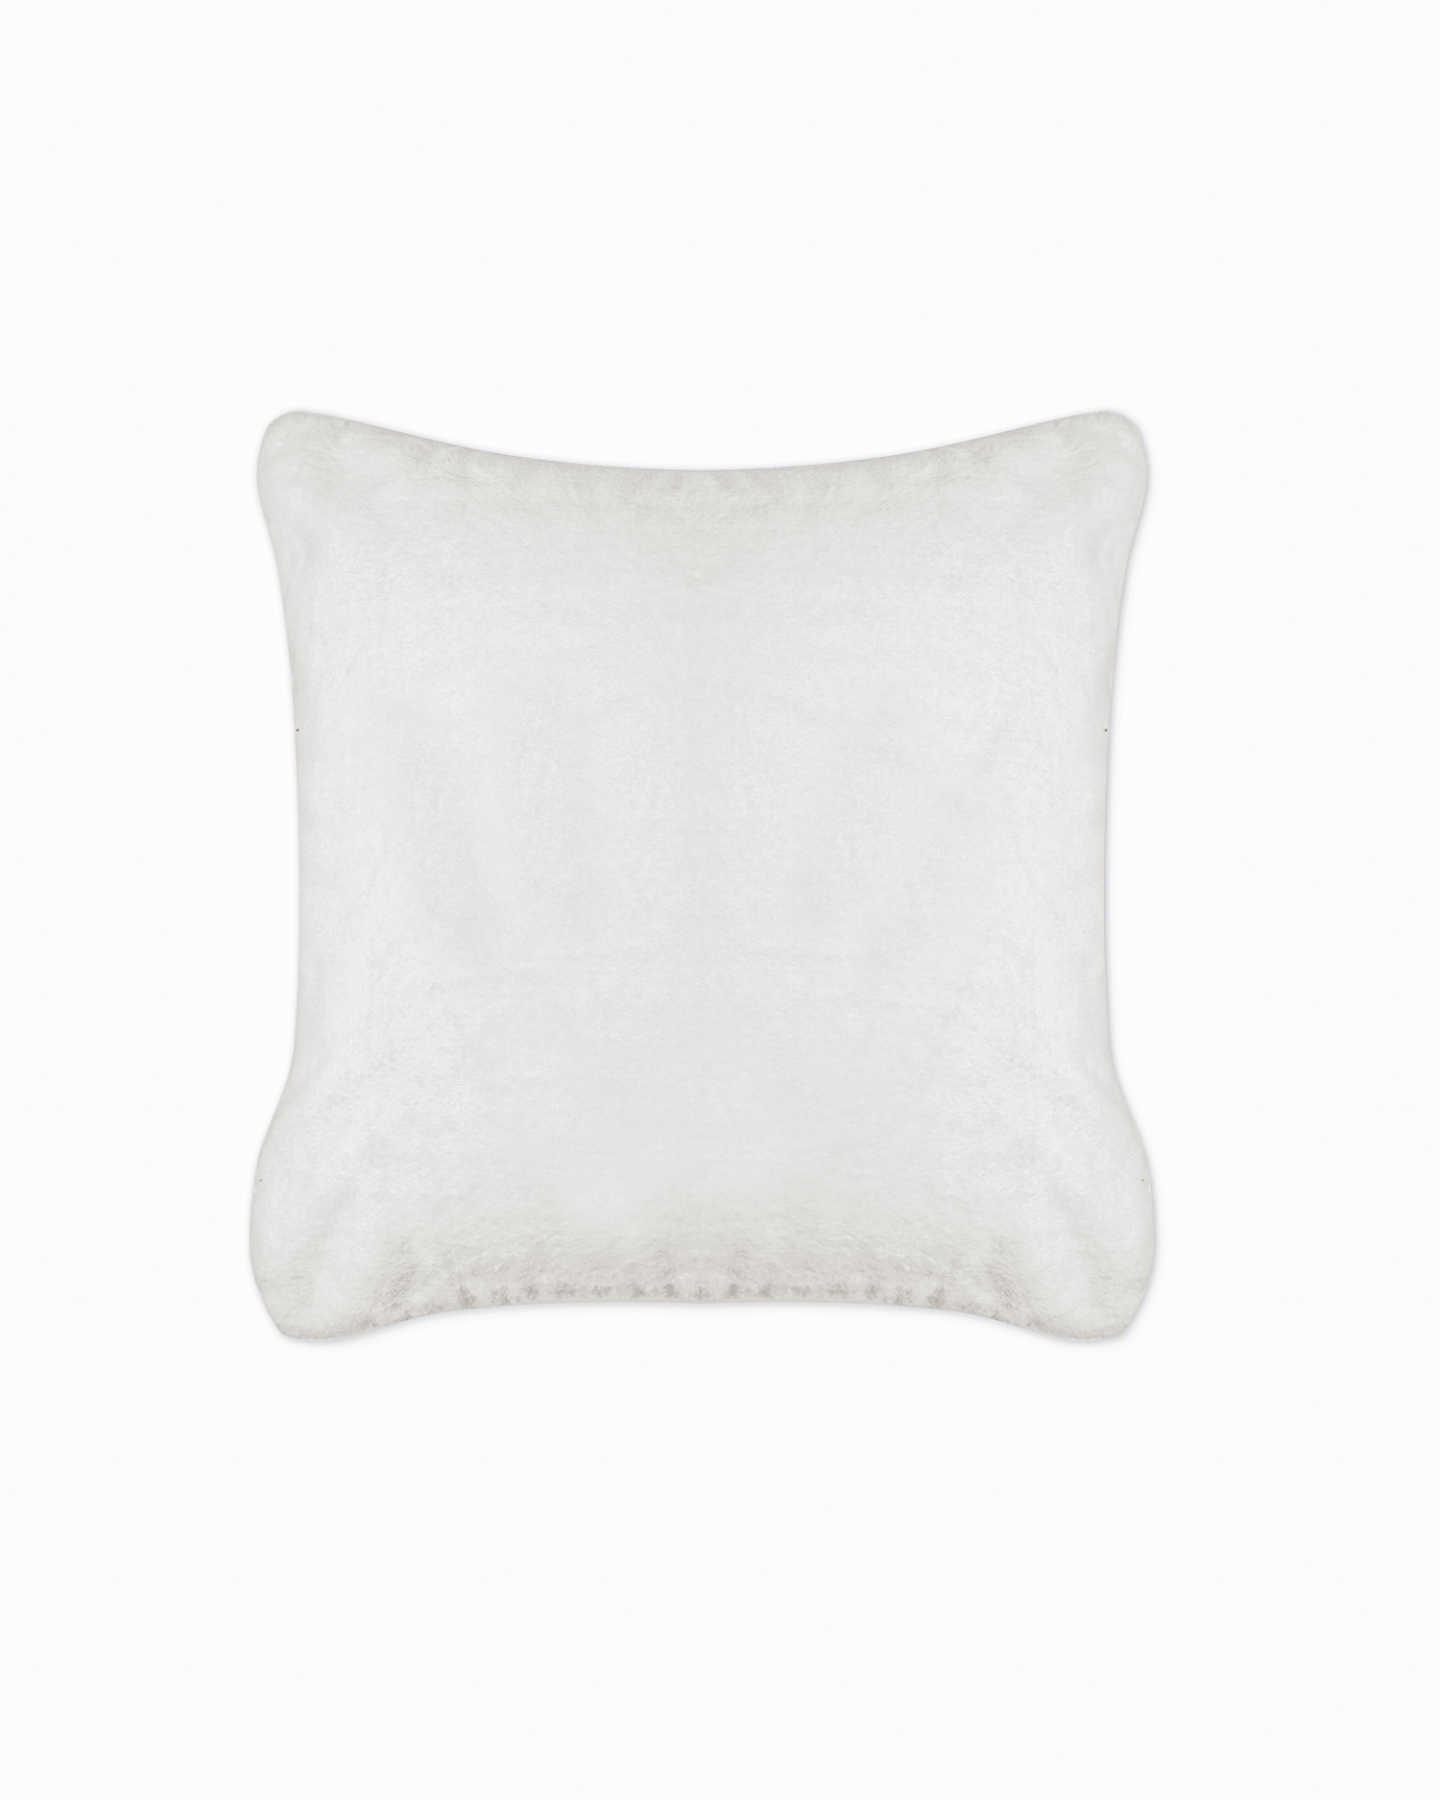 Plush Recycled Faux Fur Throw & Pillow Cover Set - Ivory - 2